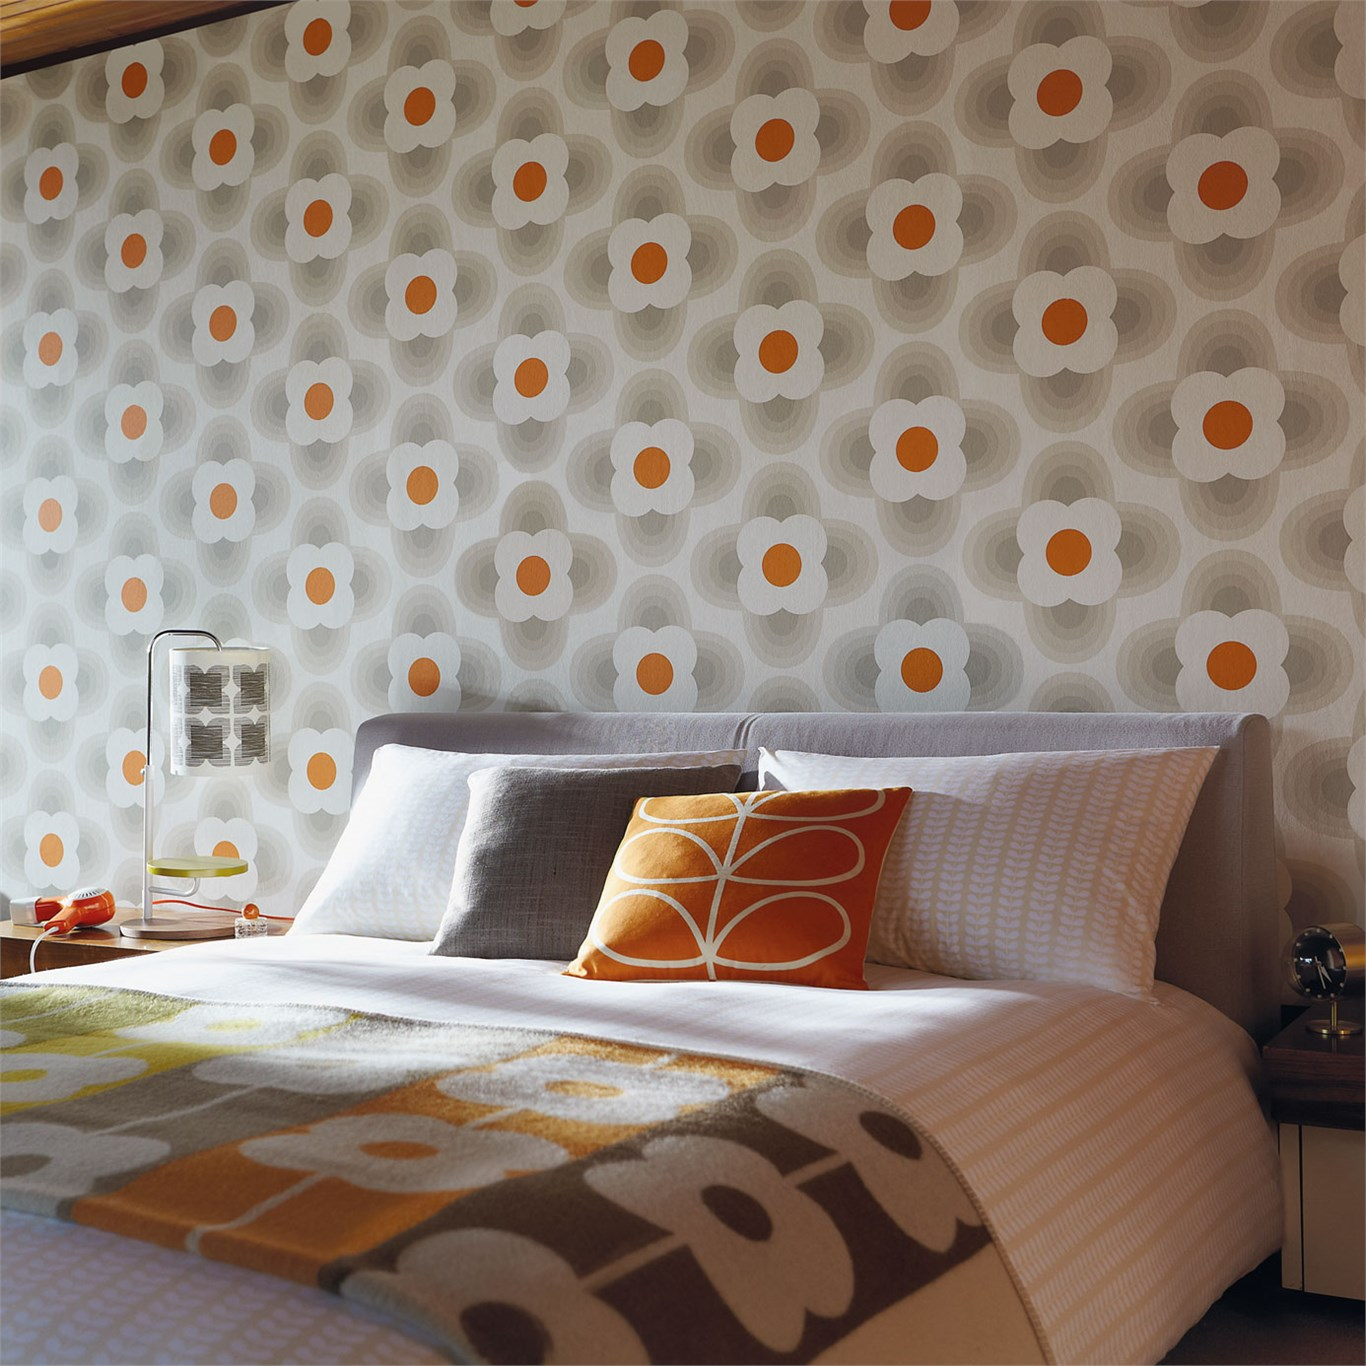 Orla kiely behang petal blauw rood funkywalls d for Modern behang